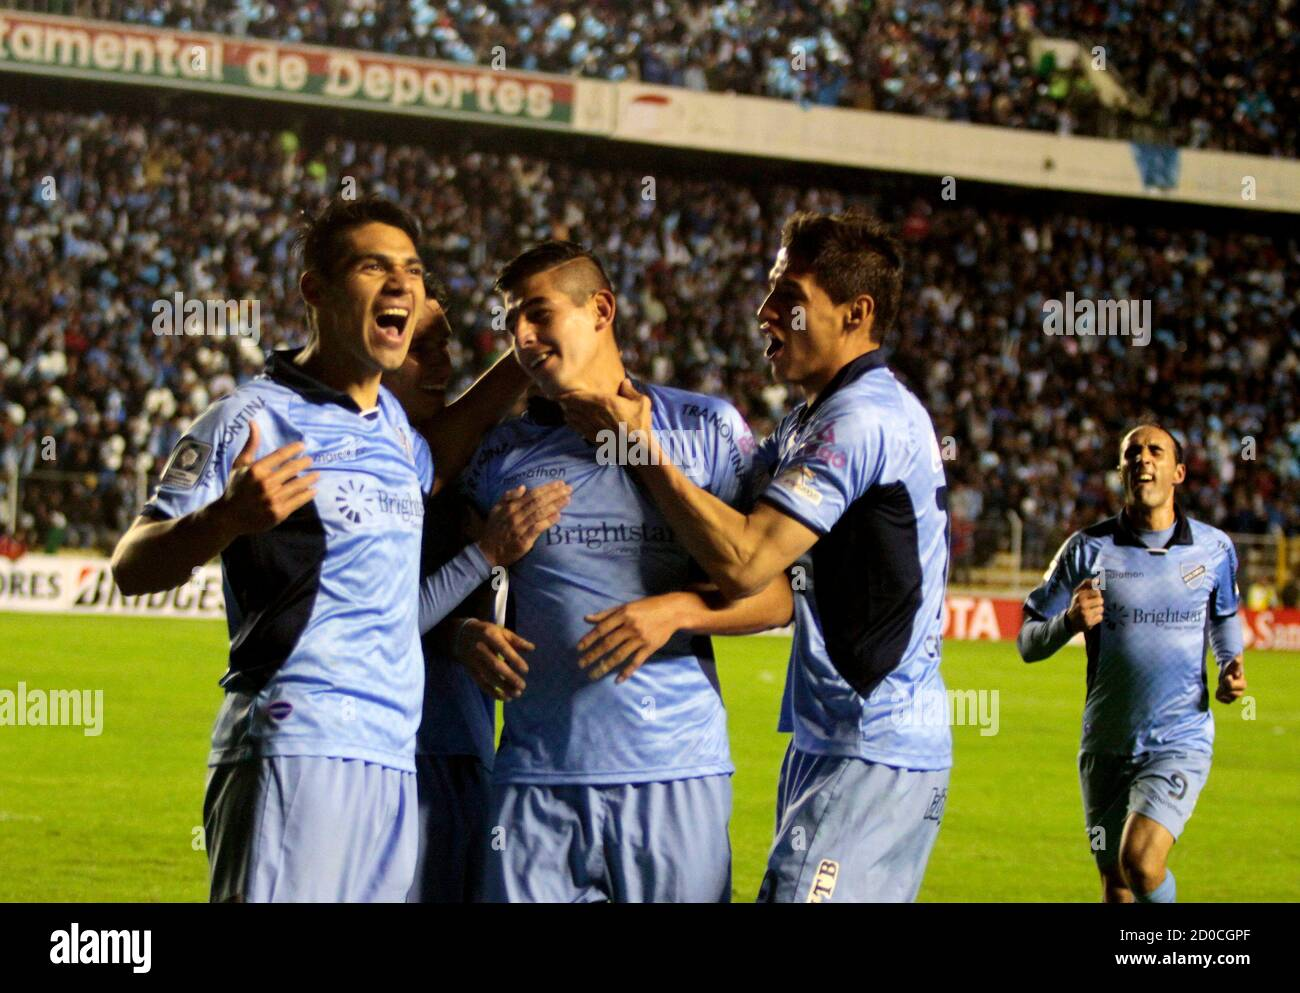 Ronald Eguino (C) of Boliva's Bolivar celebrates with teammates Luis Gutierrez (L) and Nelson Cabrera after scoring a goal against Mexico's Leon during their Copa Libertadores soccer match in La Paz, April 22, 2014. REUTERS/Gaston Brito (BOLIVIA - Tags: SPORT SOCCER) Stock Photo